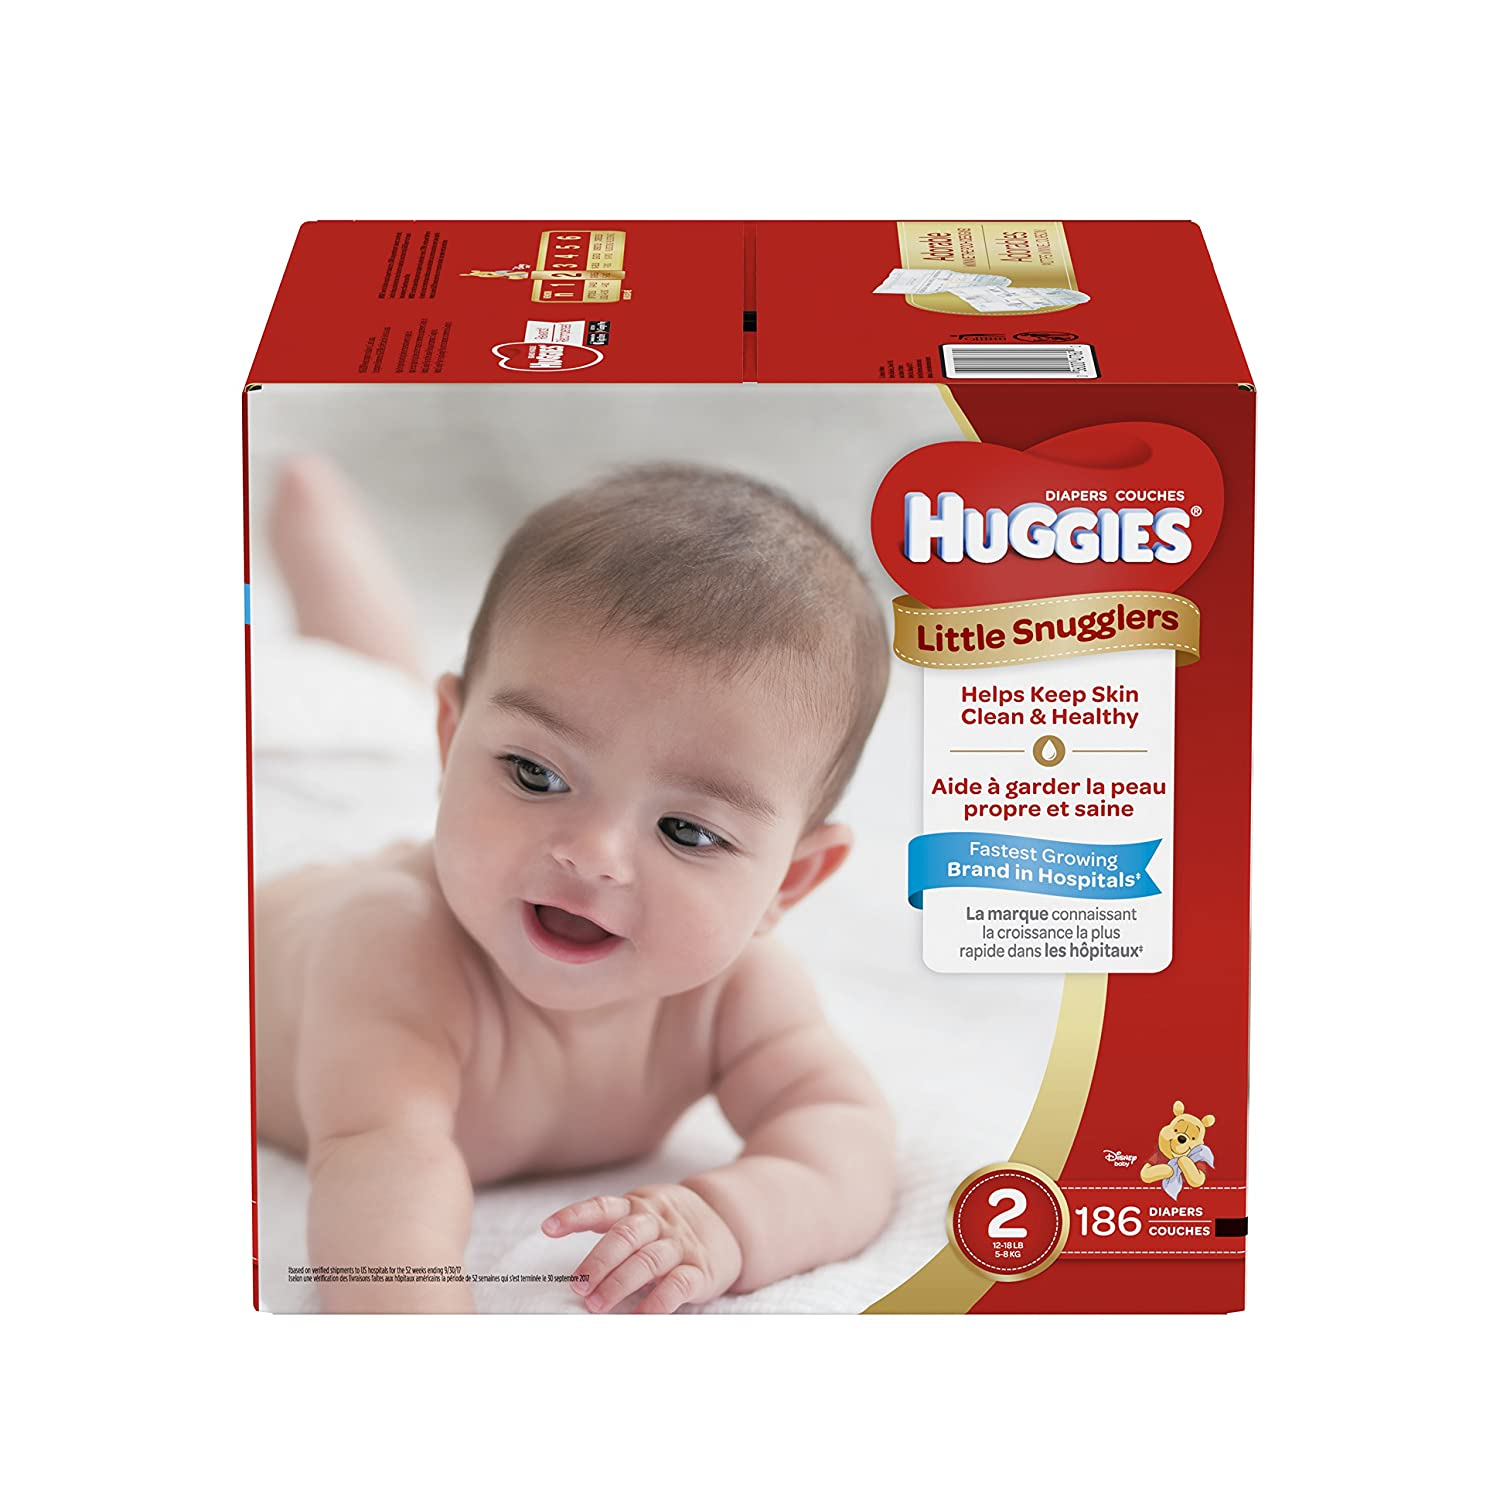 Huggies Little Snugglers Baby Diapers, Size 2, 186 Count, Economy Pack (Packaging May Vary) by Huggies